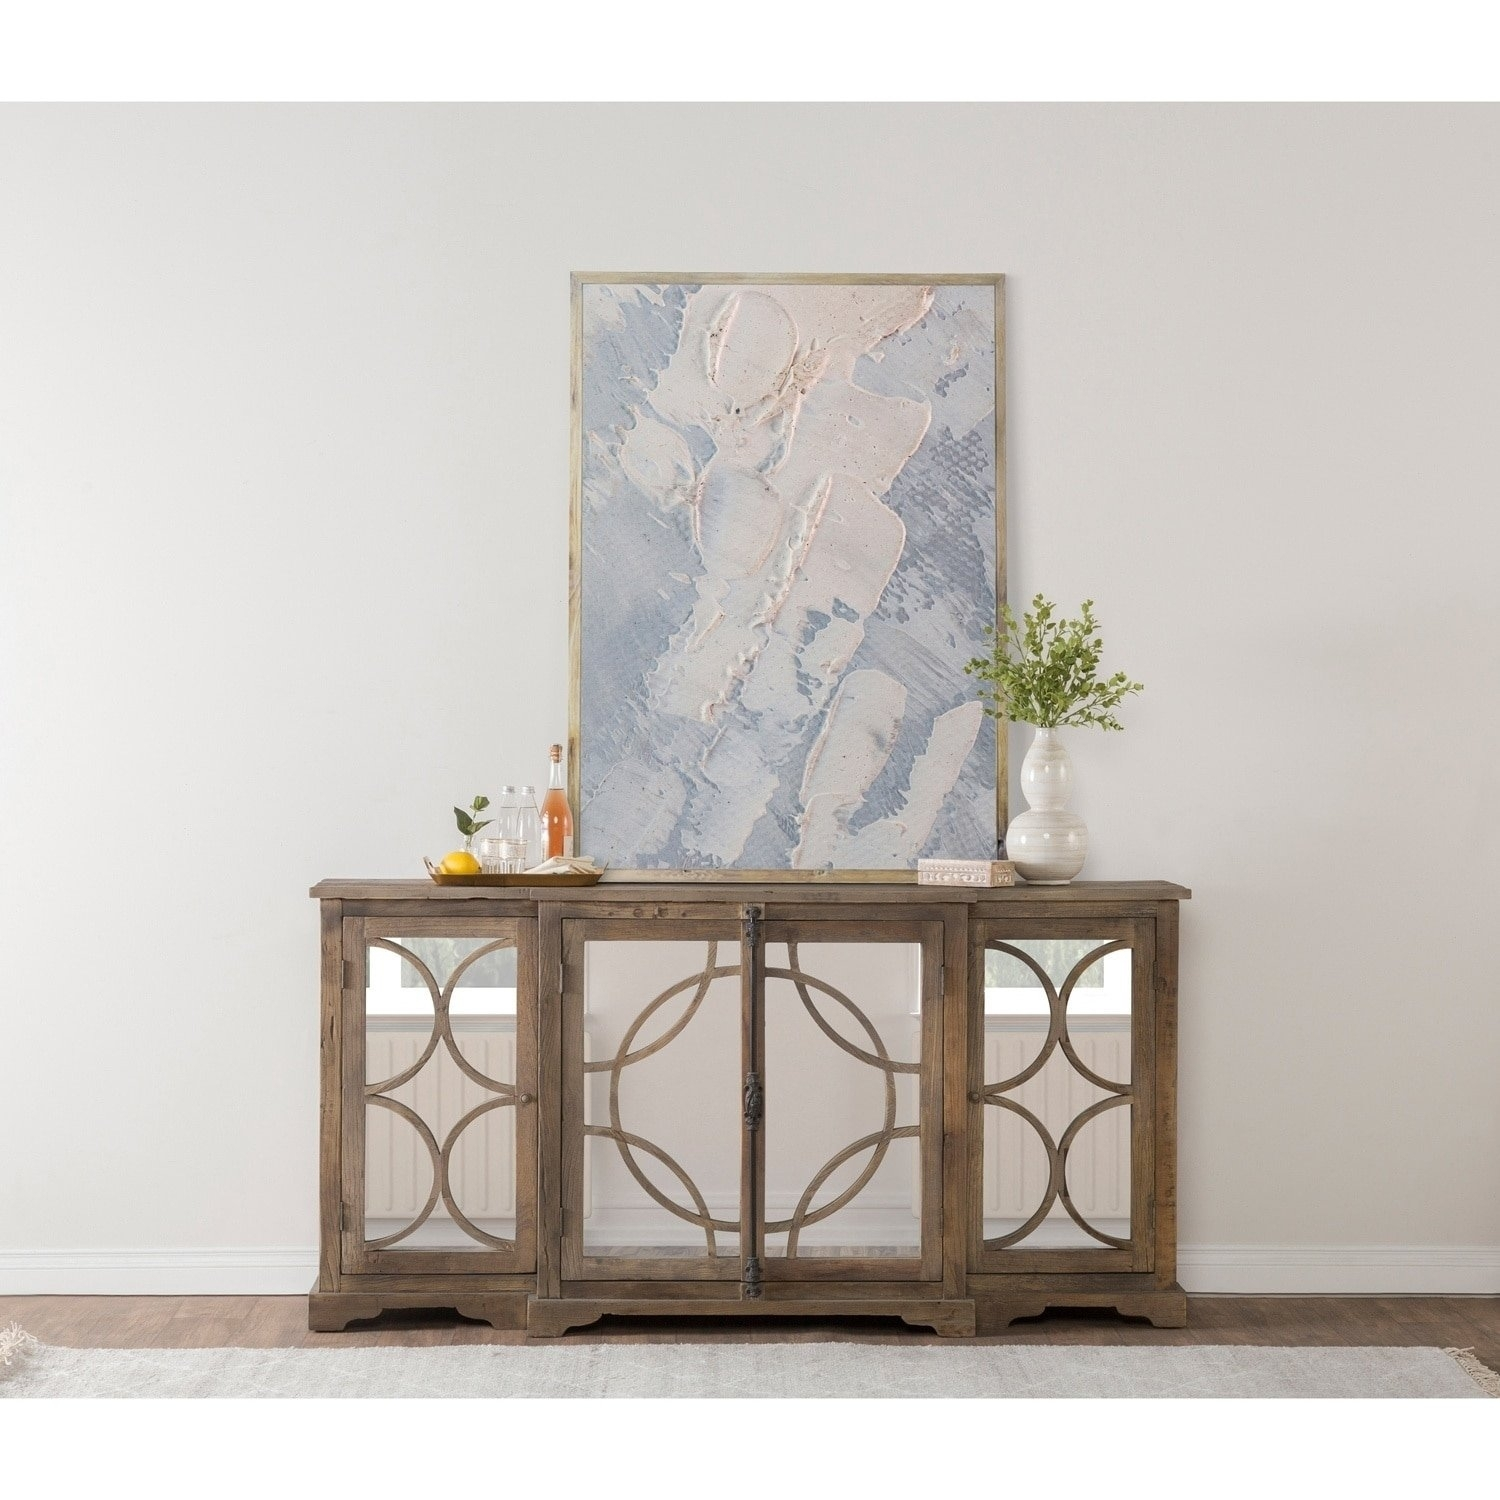 Shop Amri Reclaimed Wood Mirrored 79-Inch Sideboardkosas Home for 2-Door Mirror Front Sideboards (Image 23 of 30)